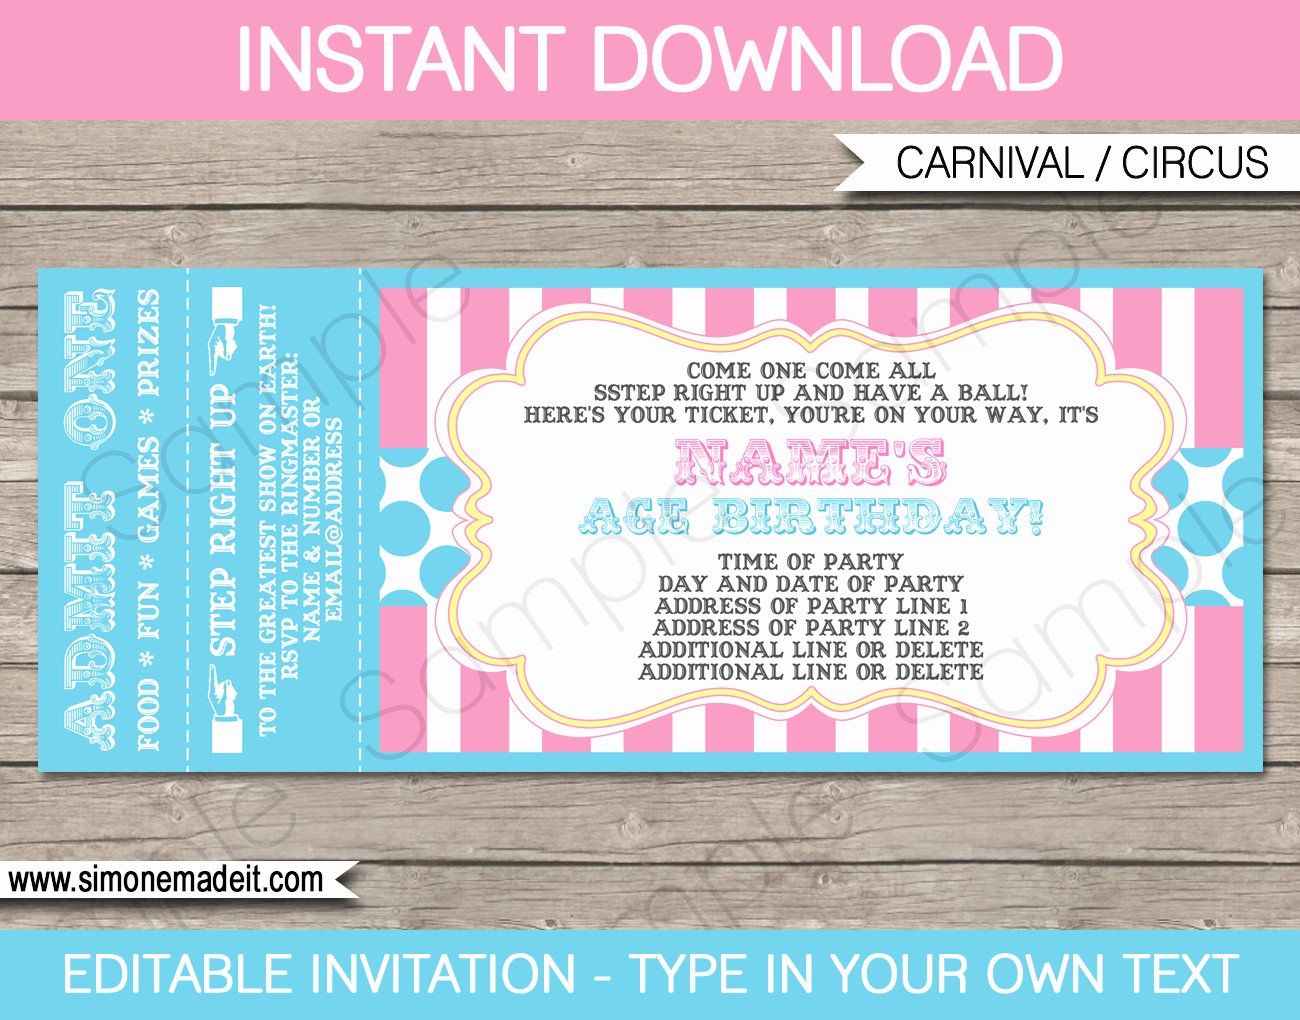 Circus Ticket Invitation Template Free Unique Carnival Party Ticket Invitations Template